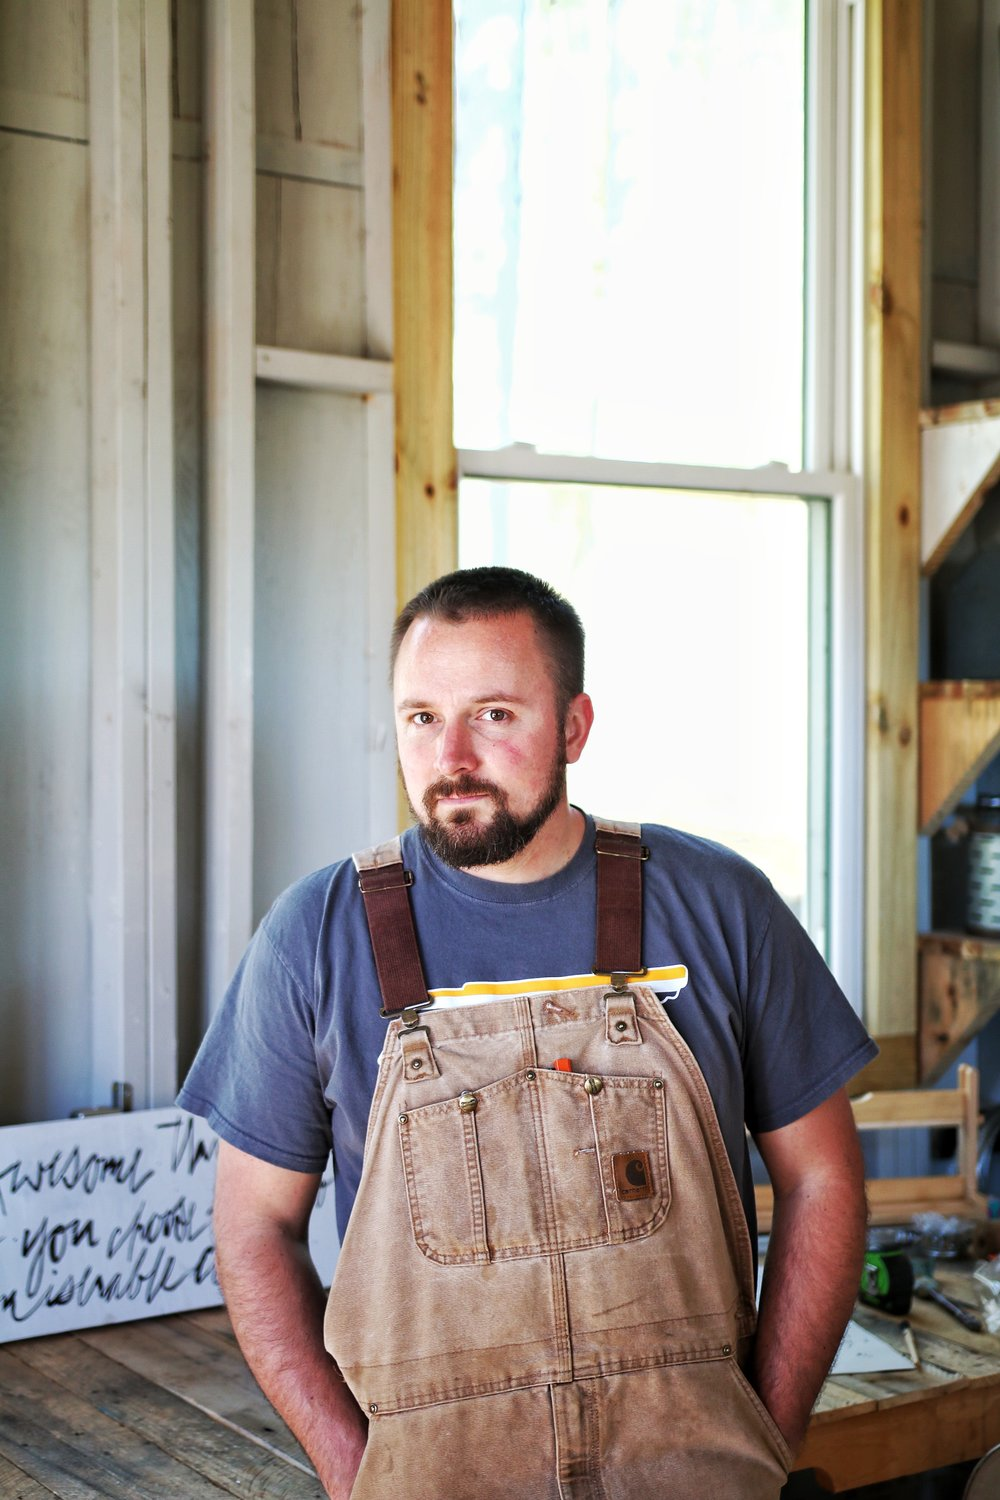 Peter serves as Milk Moon House's carpenter and  specializes in custom shelving, barn doors, and any other project our clients dream up or grab off Pinterest or find in a catalog. He's also the founder and sole employee of the MMH delivery company. He's the handsome fella at your doorstep with a smile and great handshake.